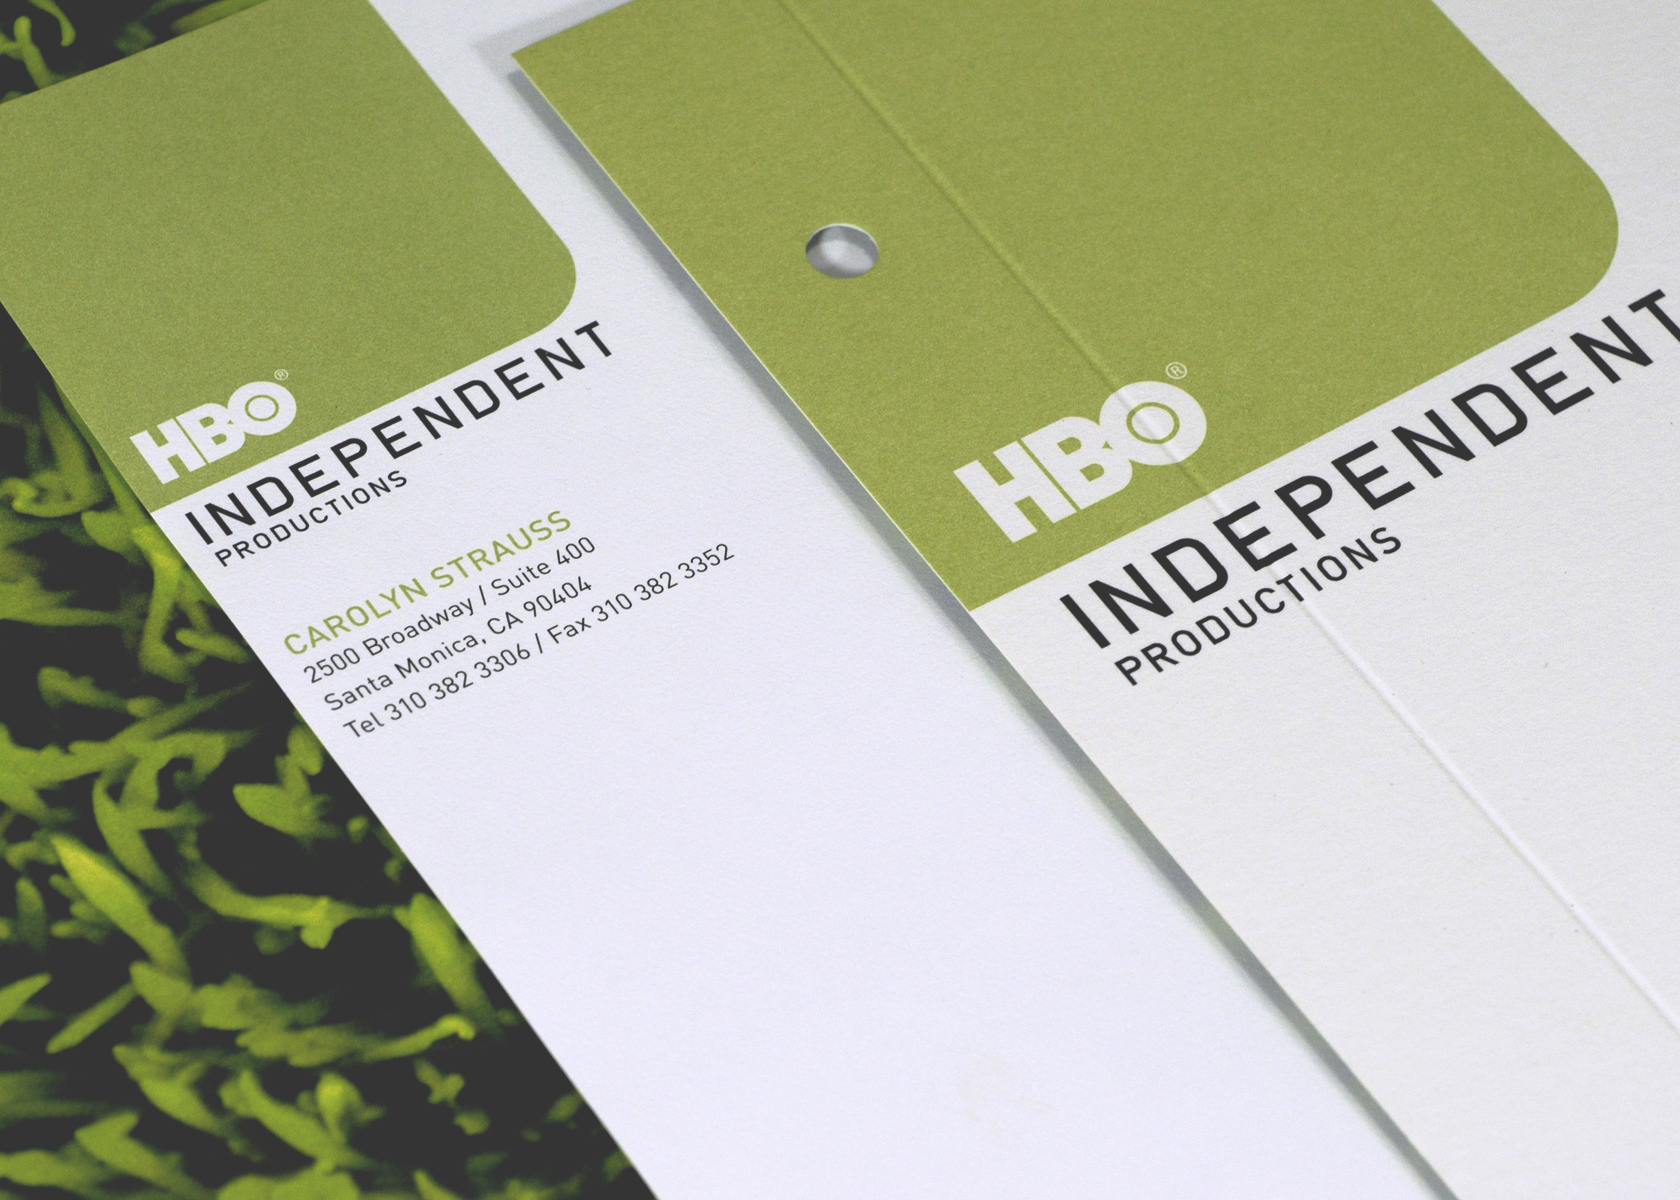 HBO_Independent_02_TRT